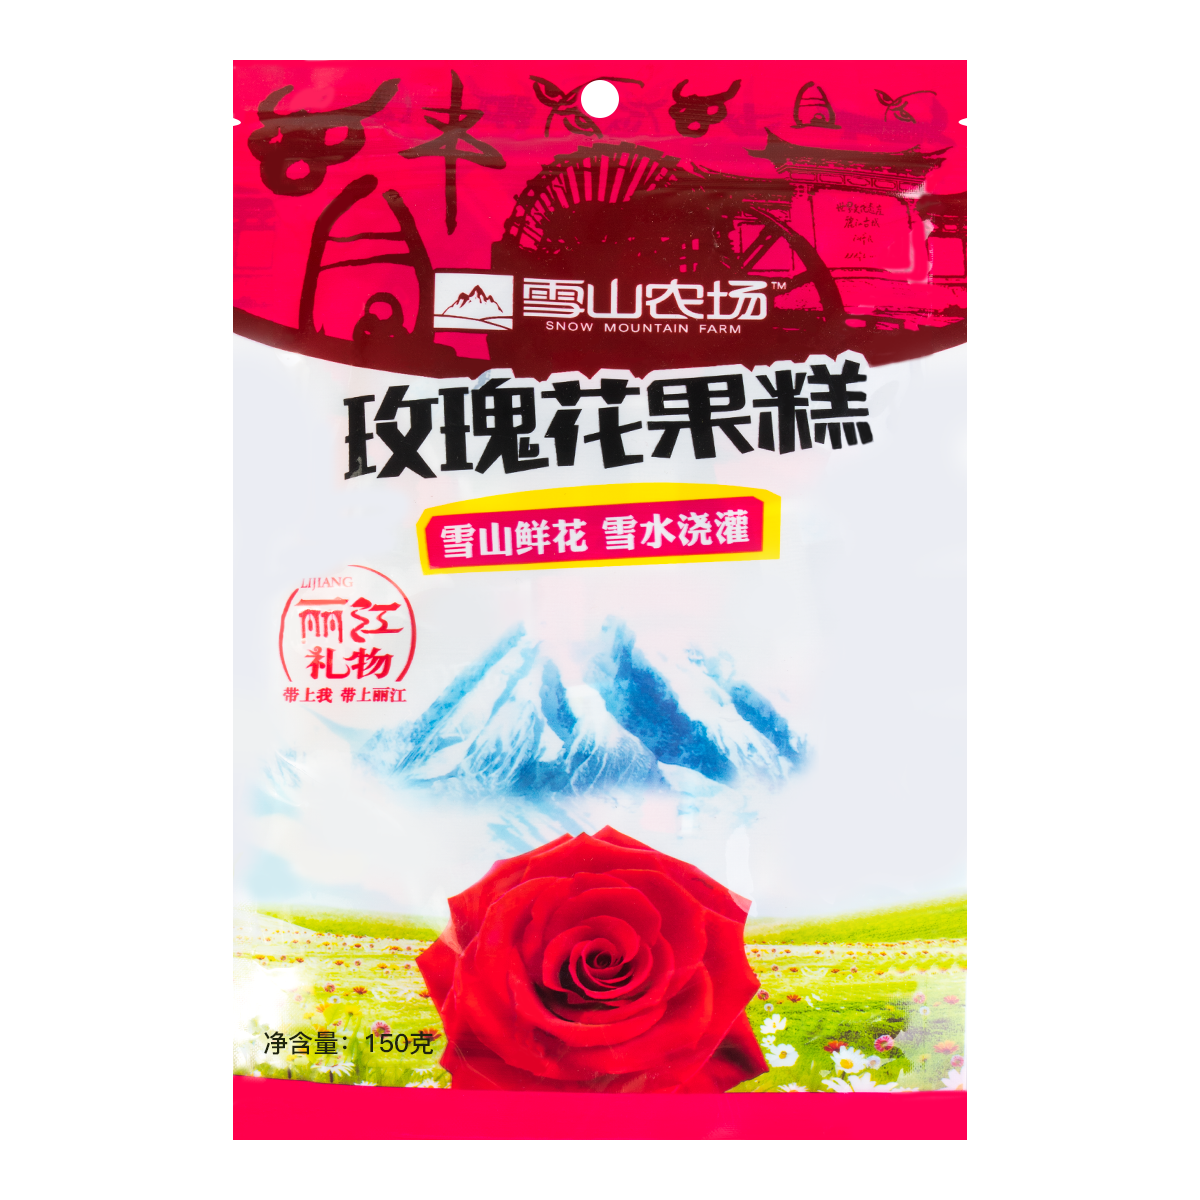 LIJIANG Snow Mountain Farm Rose Jelly 150g